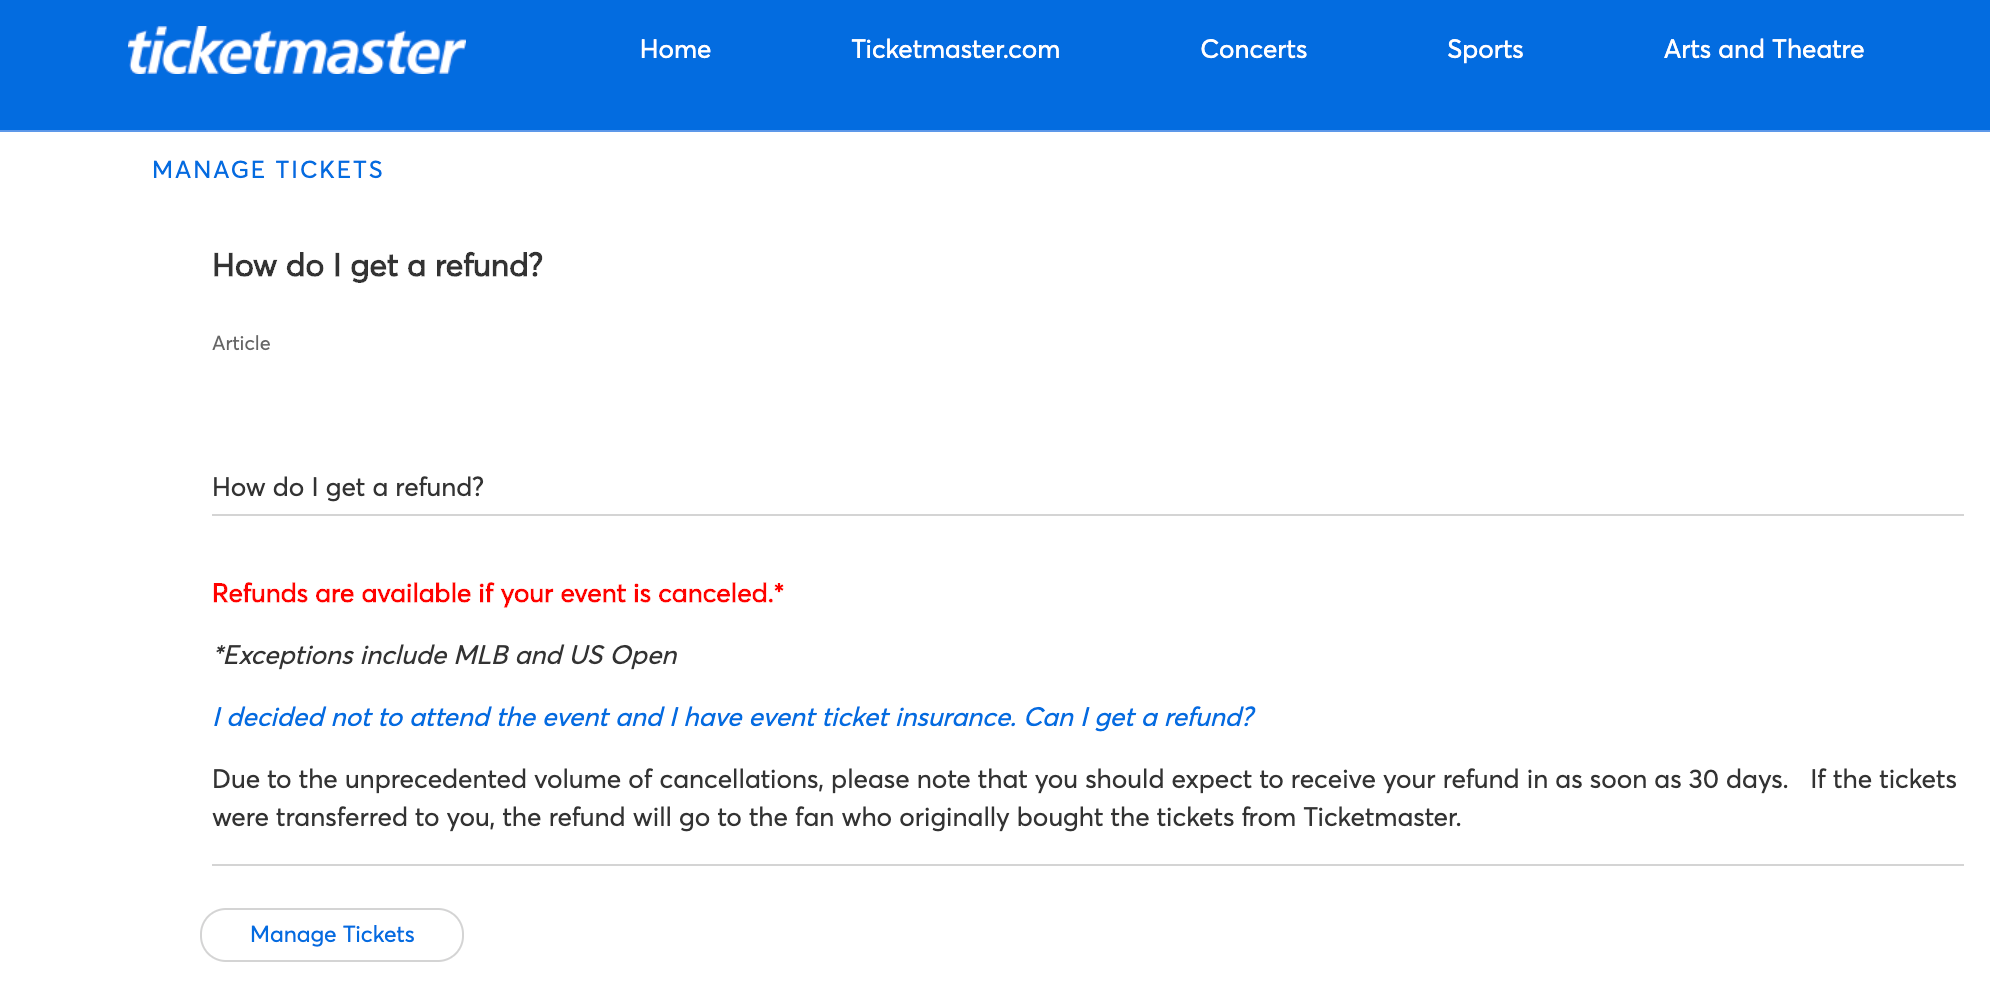 ticketmaster-canceled-1586827780093.png